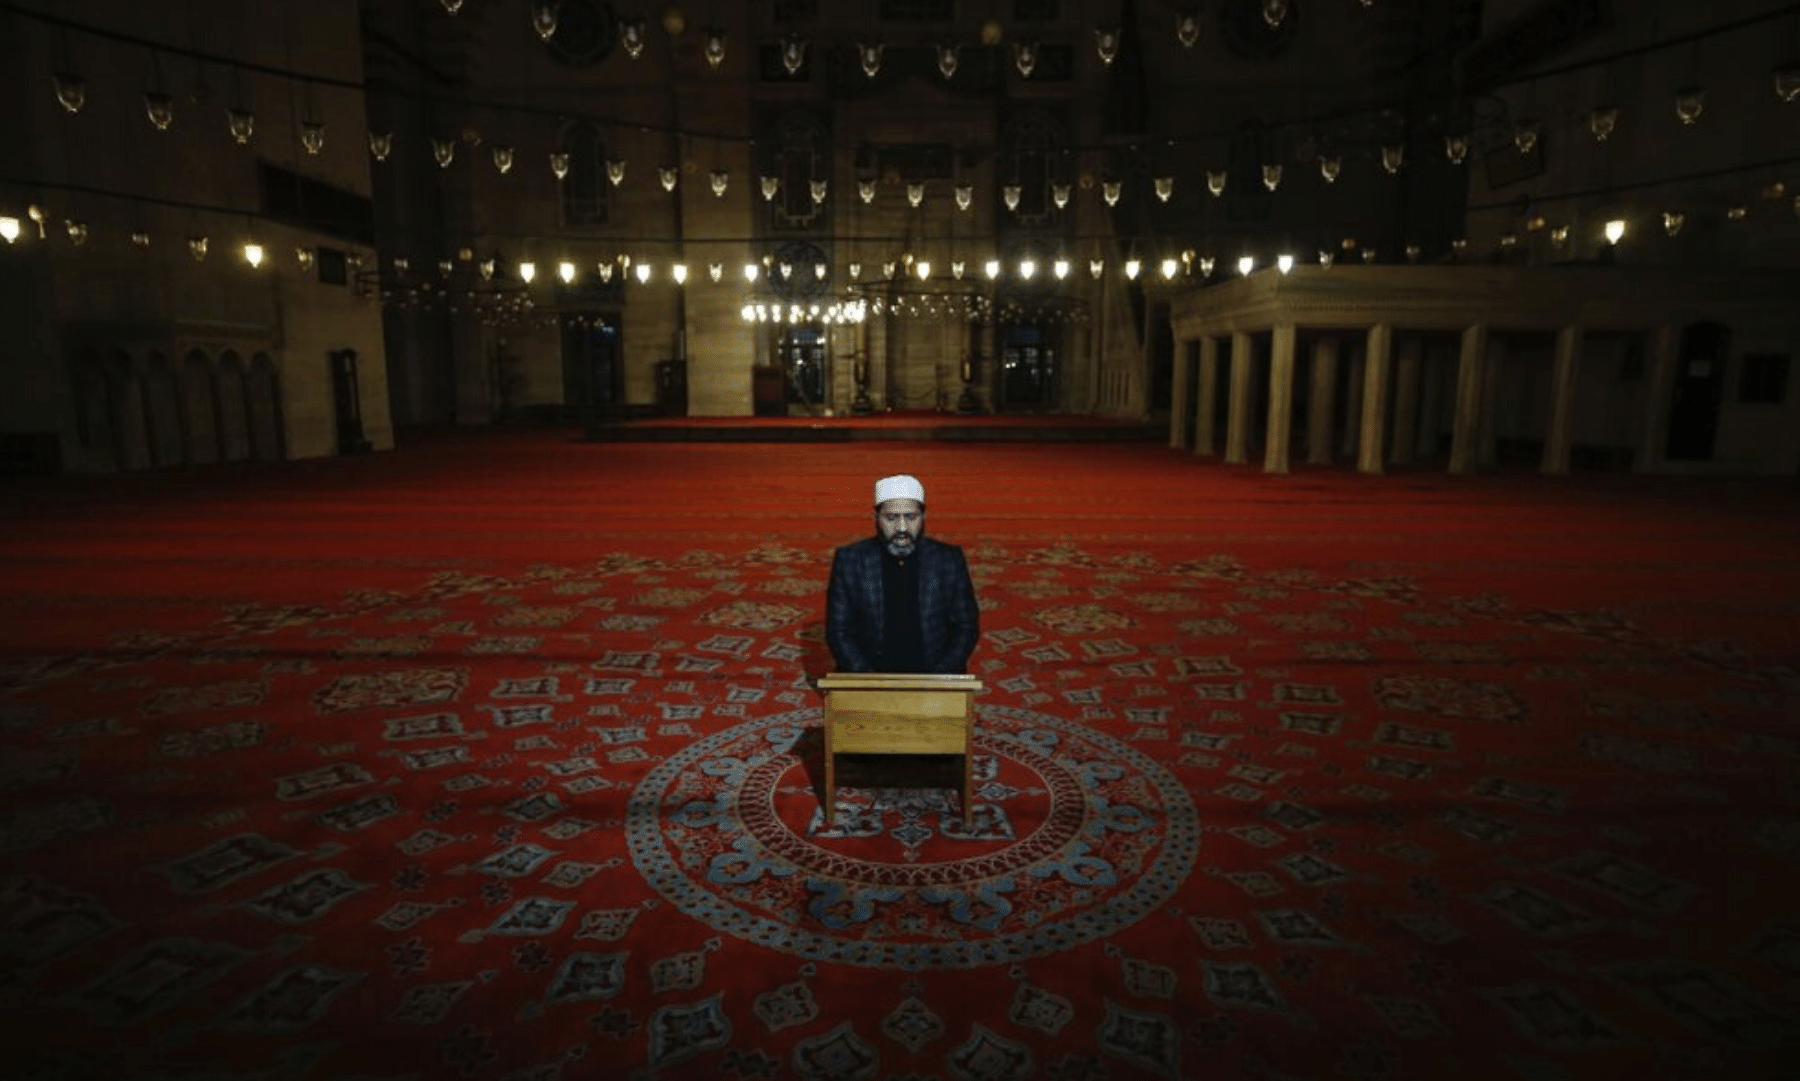 An imam recites verses of the Quran during the Eidul Fitr prayer amid concerns of the coronavirus outbreak at the historical Suleymaniye Mosque in Istanbul, Turkey. — AP